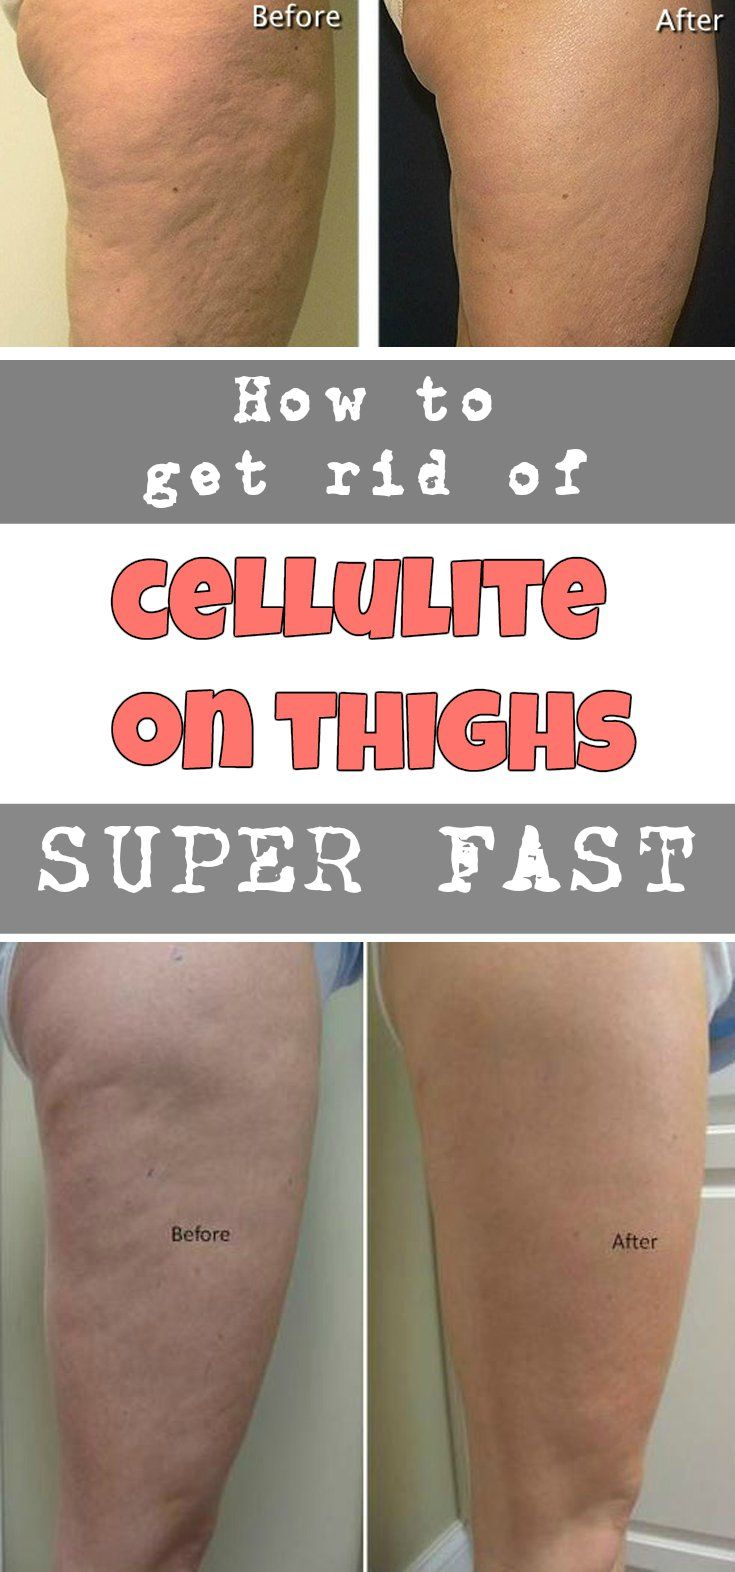 HOW TO GET RID OF CELLULITE ON THIGHS SUPER FAST